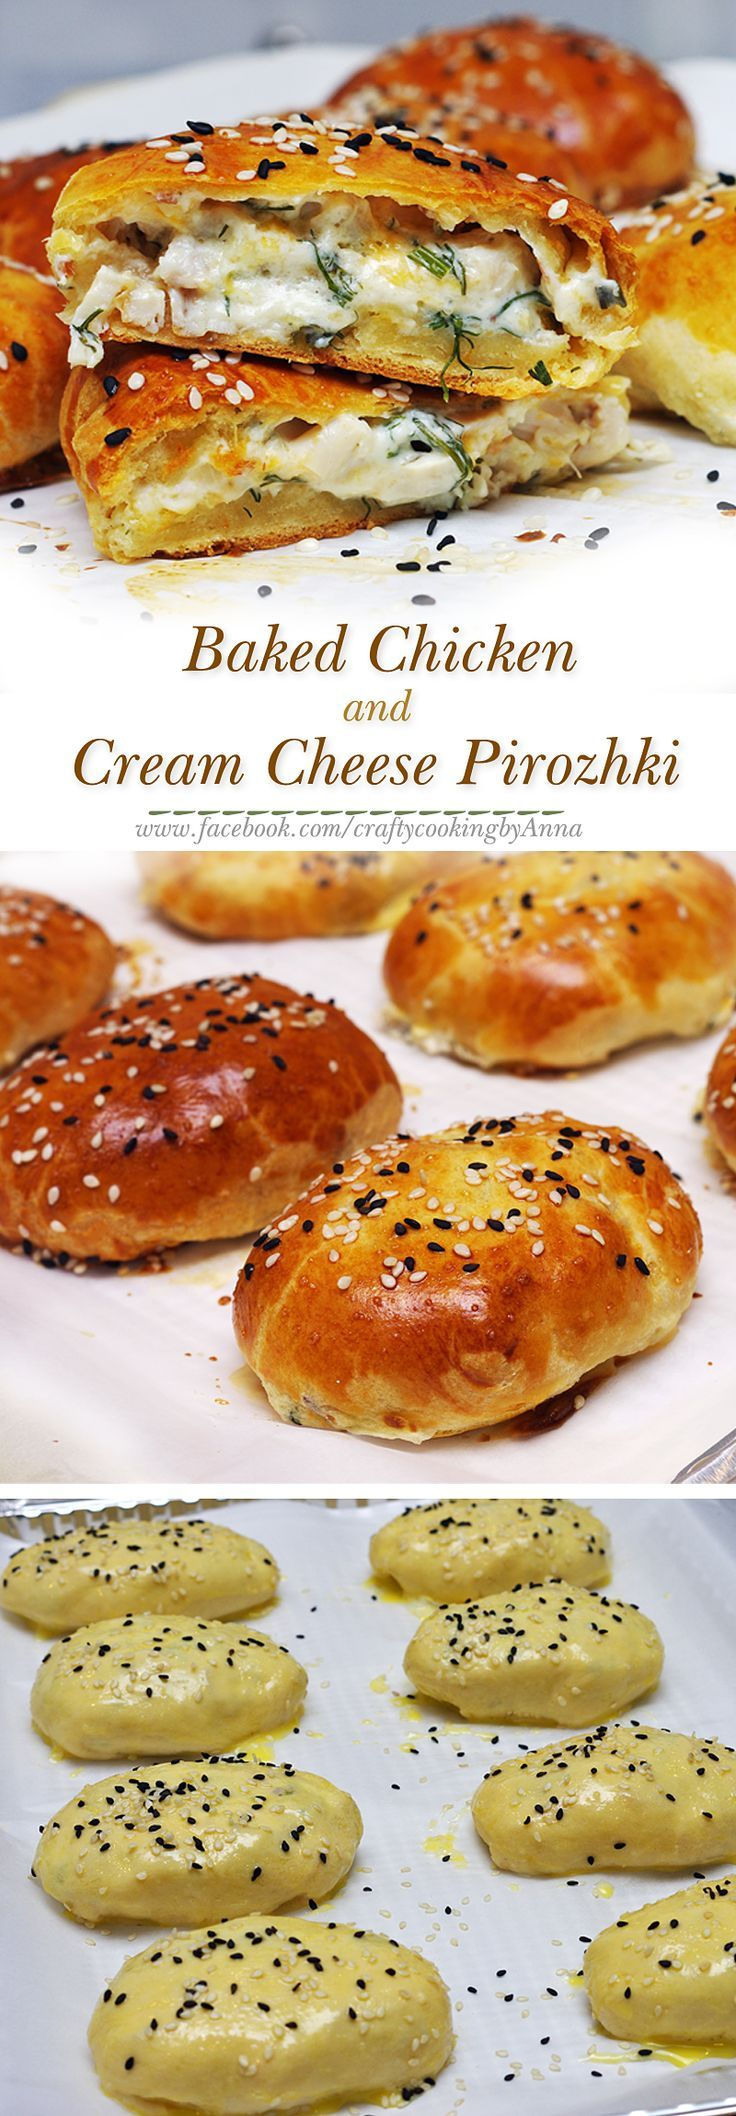 Baked Chicken and Cream Cheese Pirozhki! #easy #delicious #Russian #lunch…